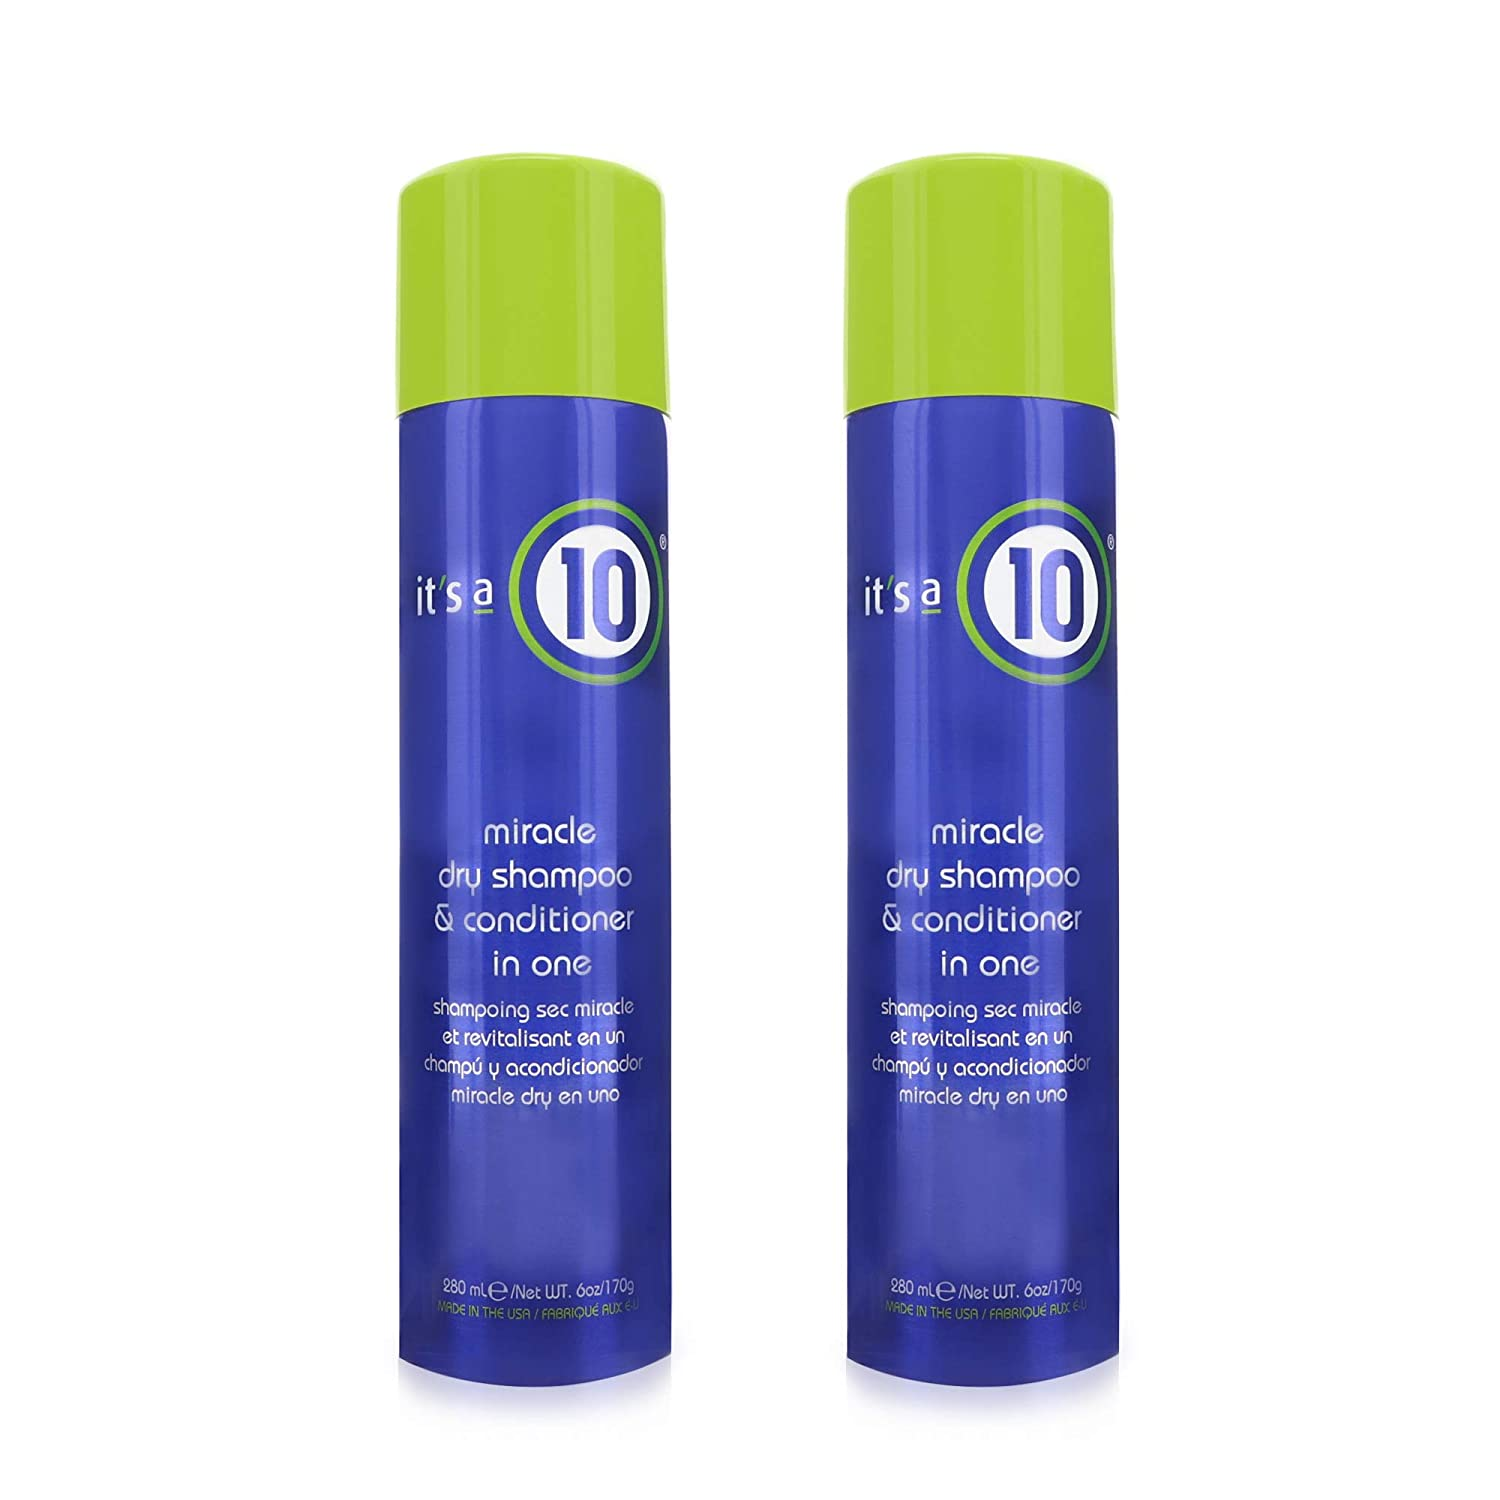 it's a 10 Haircare Miracle Dry Shampoo & Conditioner in One, 6 oz. (Pack of 2)